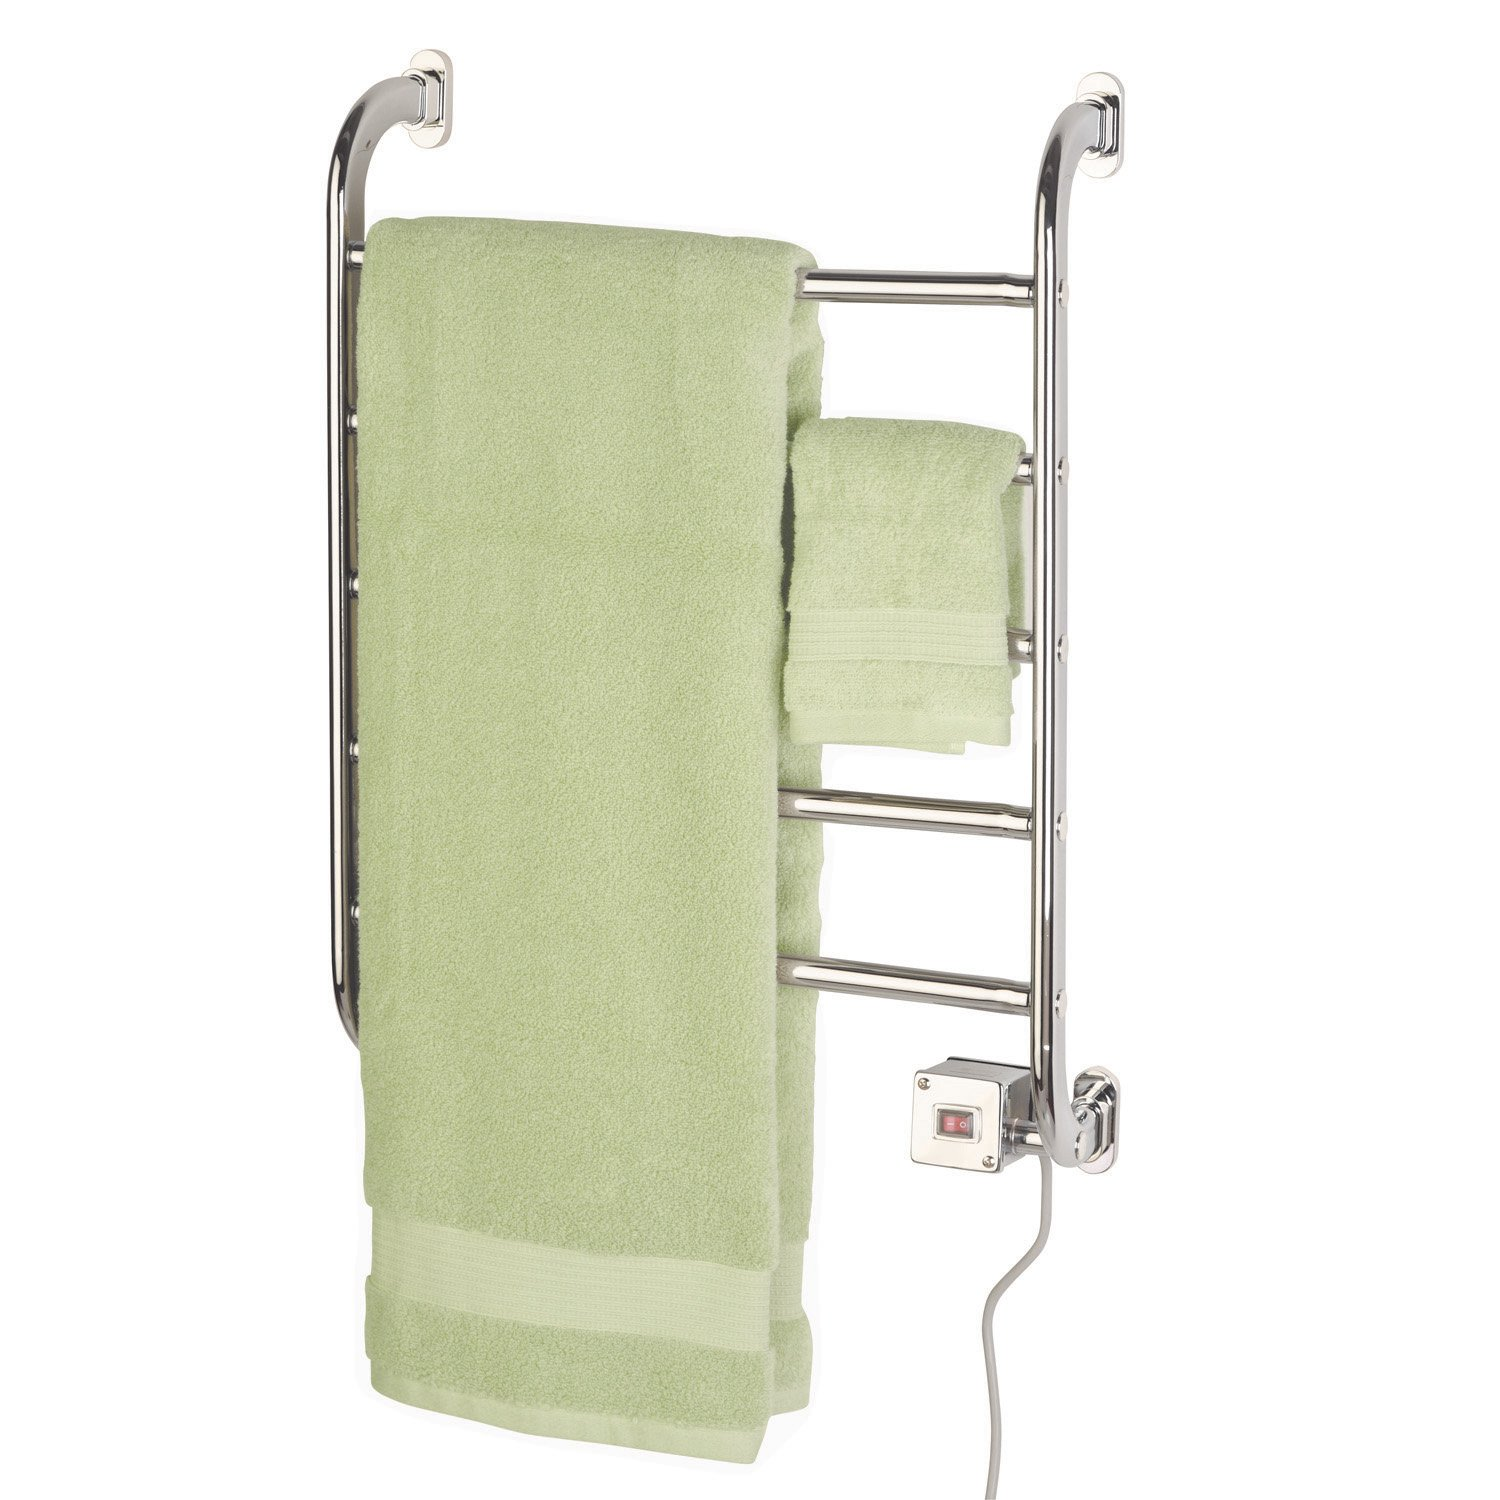 Top 10 Best Wall Mounted Towel Warmers 2019-2020 - cover